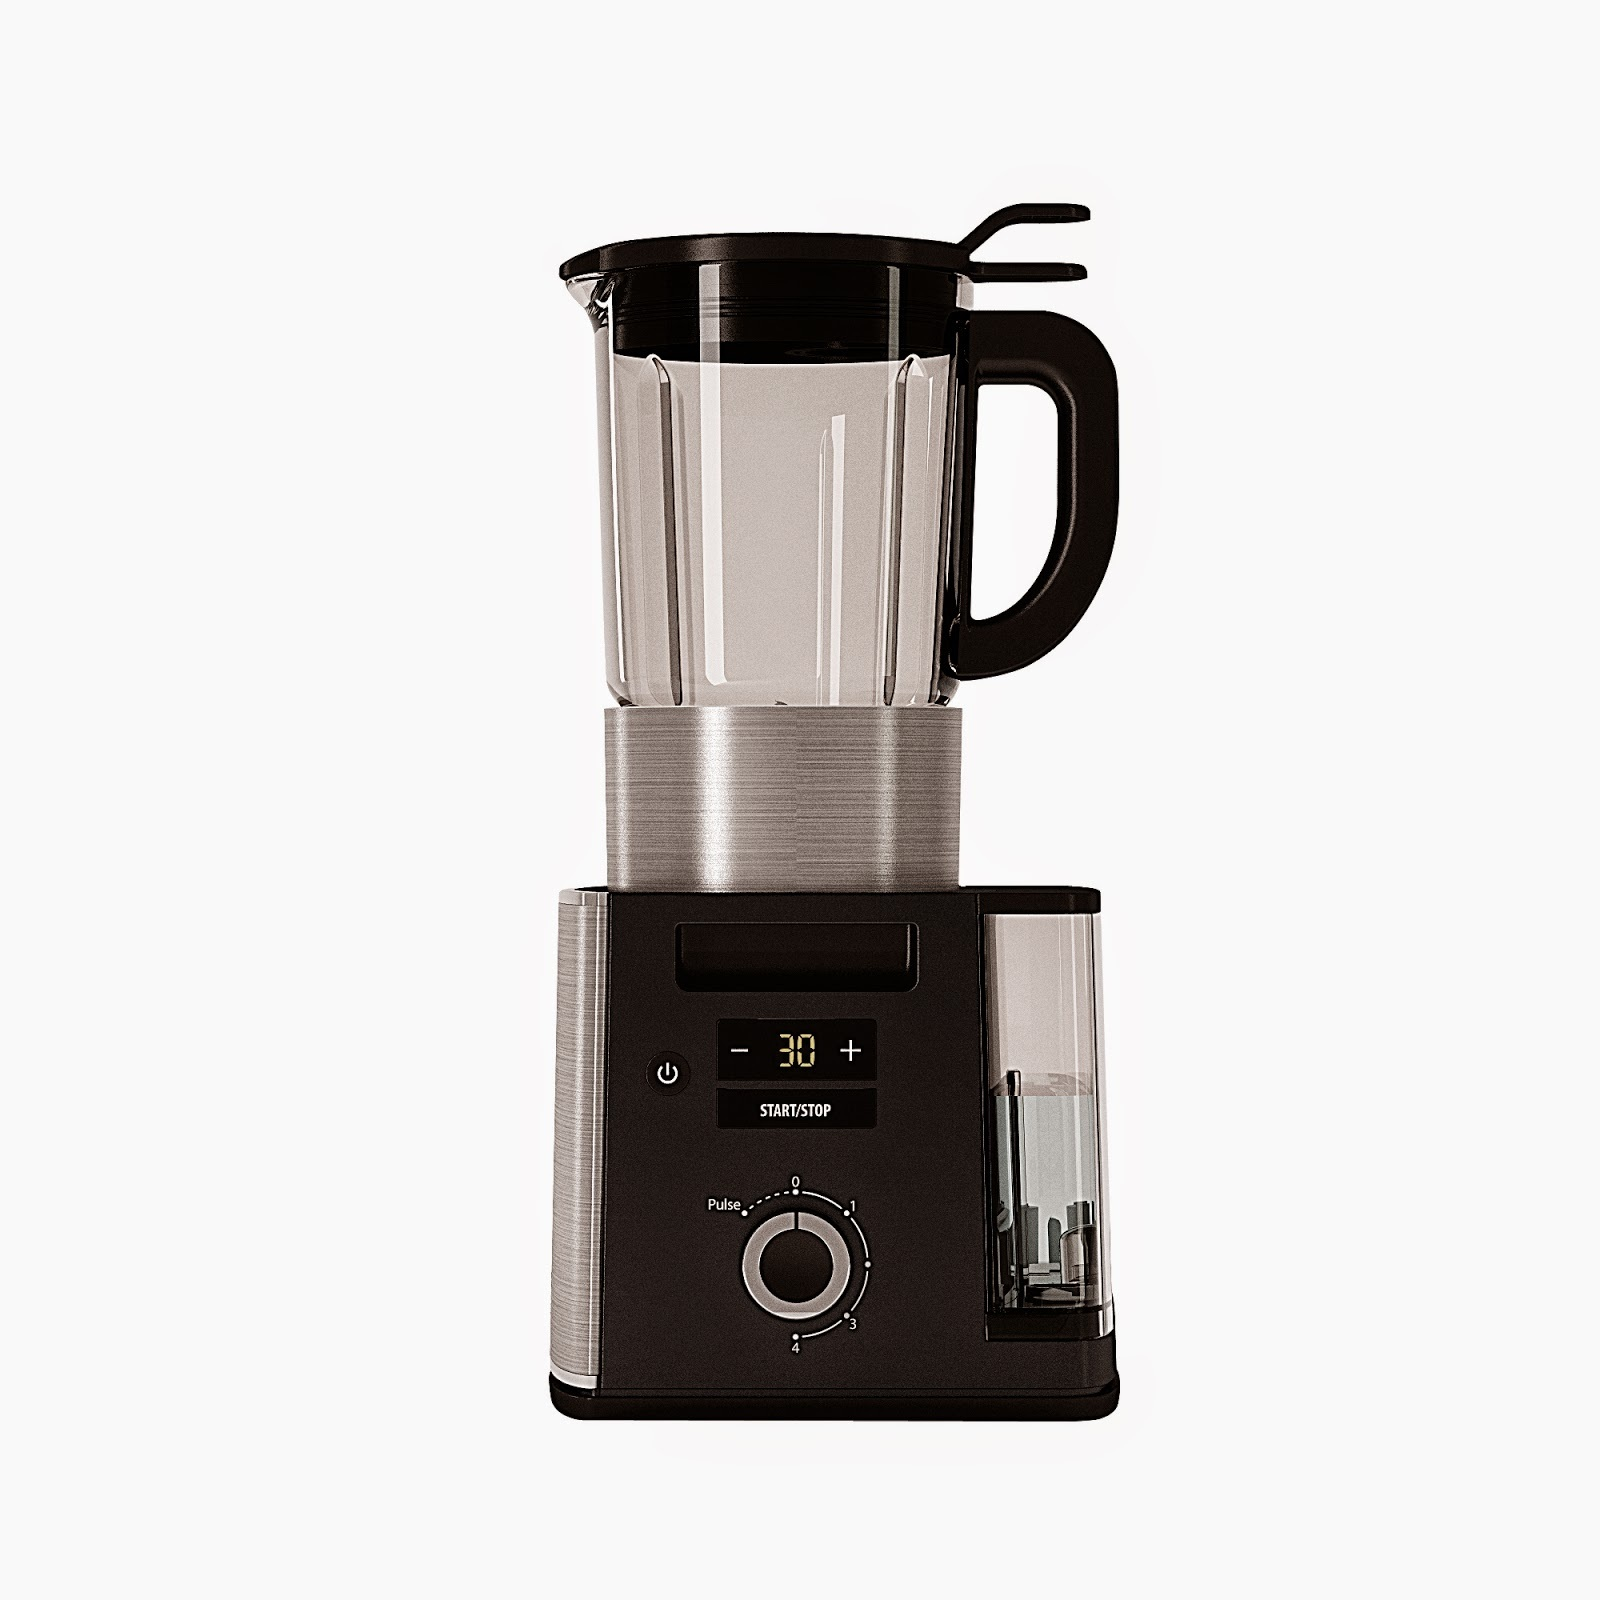 Hotpoint Steam Blender Review Pt 1.